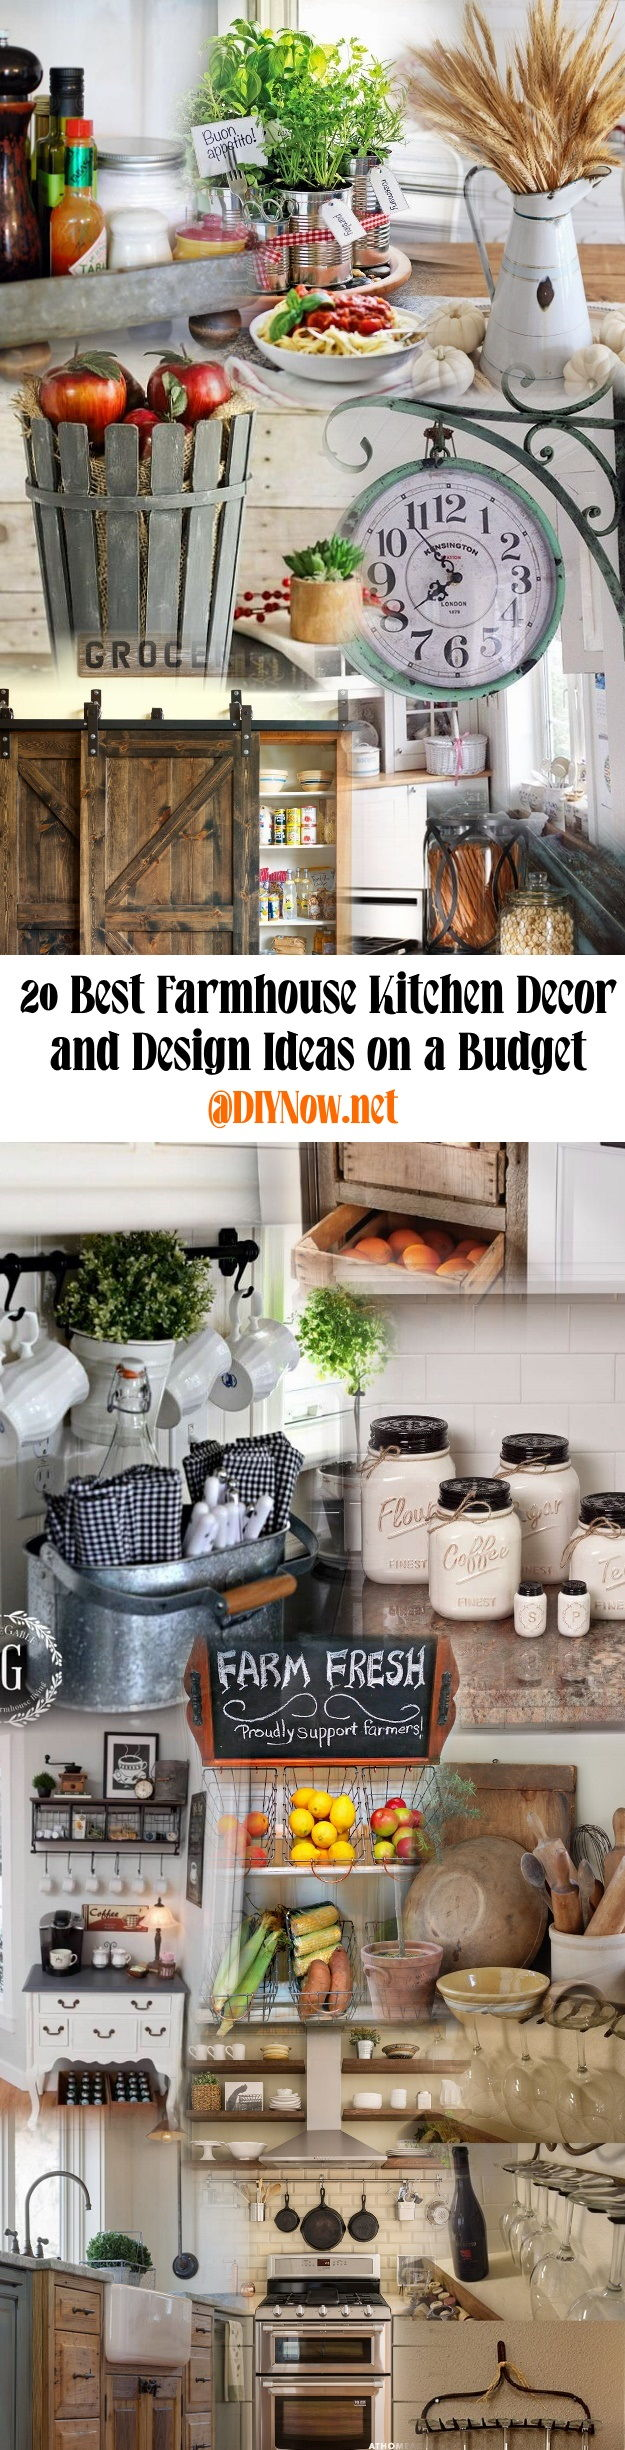 20 Best Farmhouse Kitchen Decor and Design Ideas on a Budget